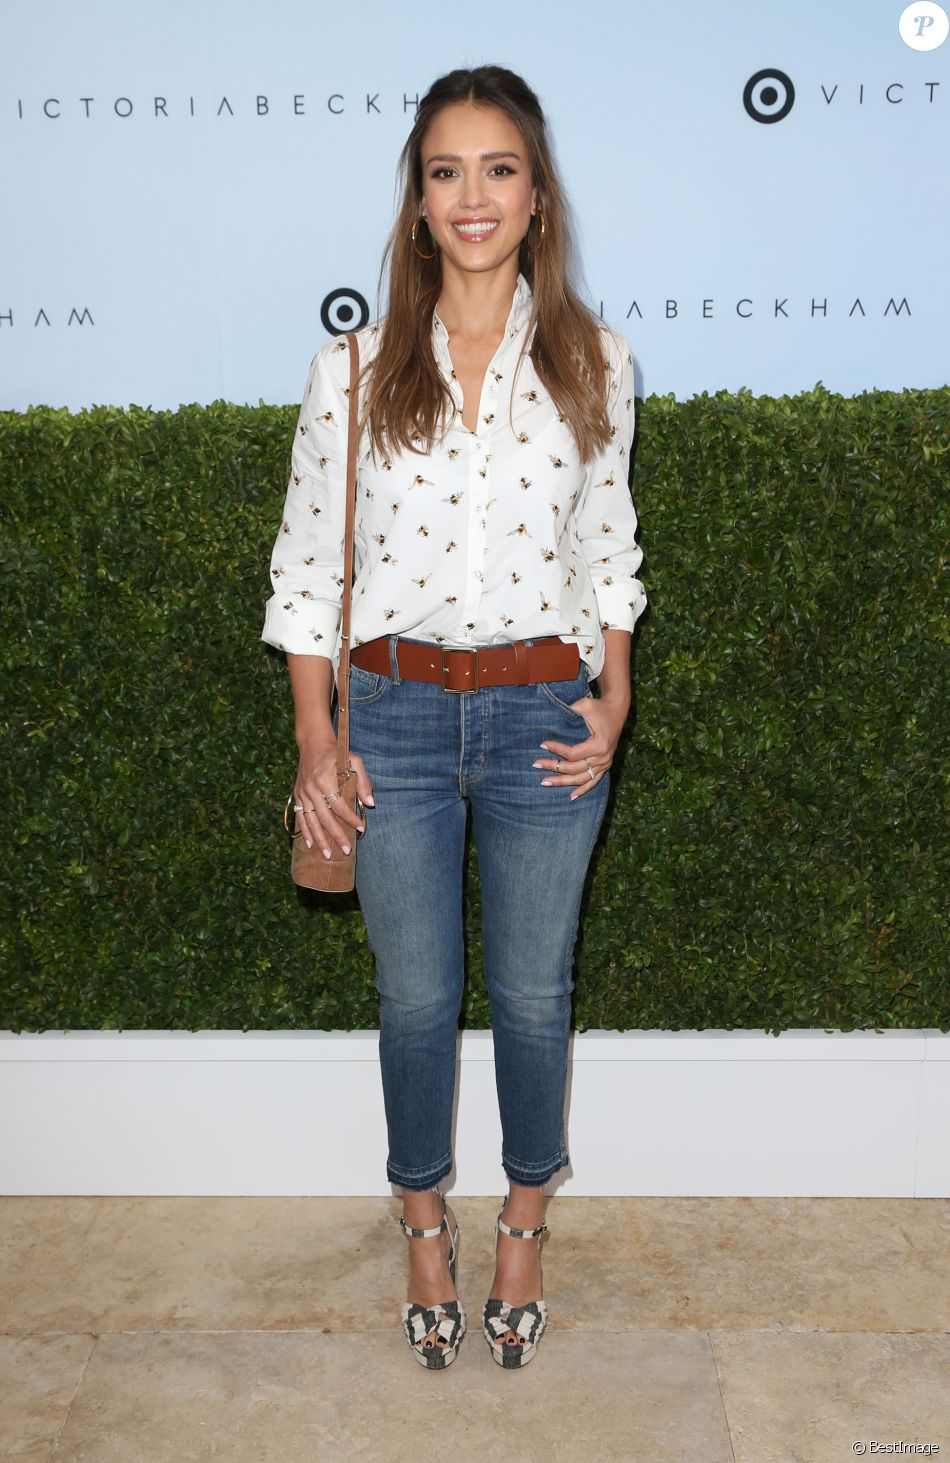 Jessica Alba - Garden party de lancement de la collection Victoria Beckham x Target à Los Angeles le 1er avril 2017. © AdMedia via ZUMA Wire / Bestimage